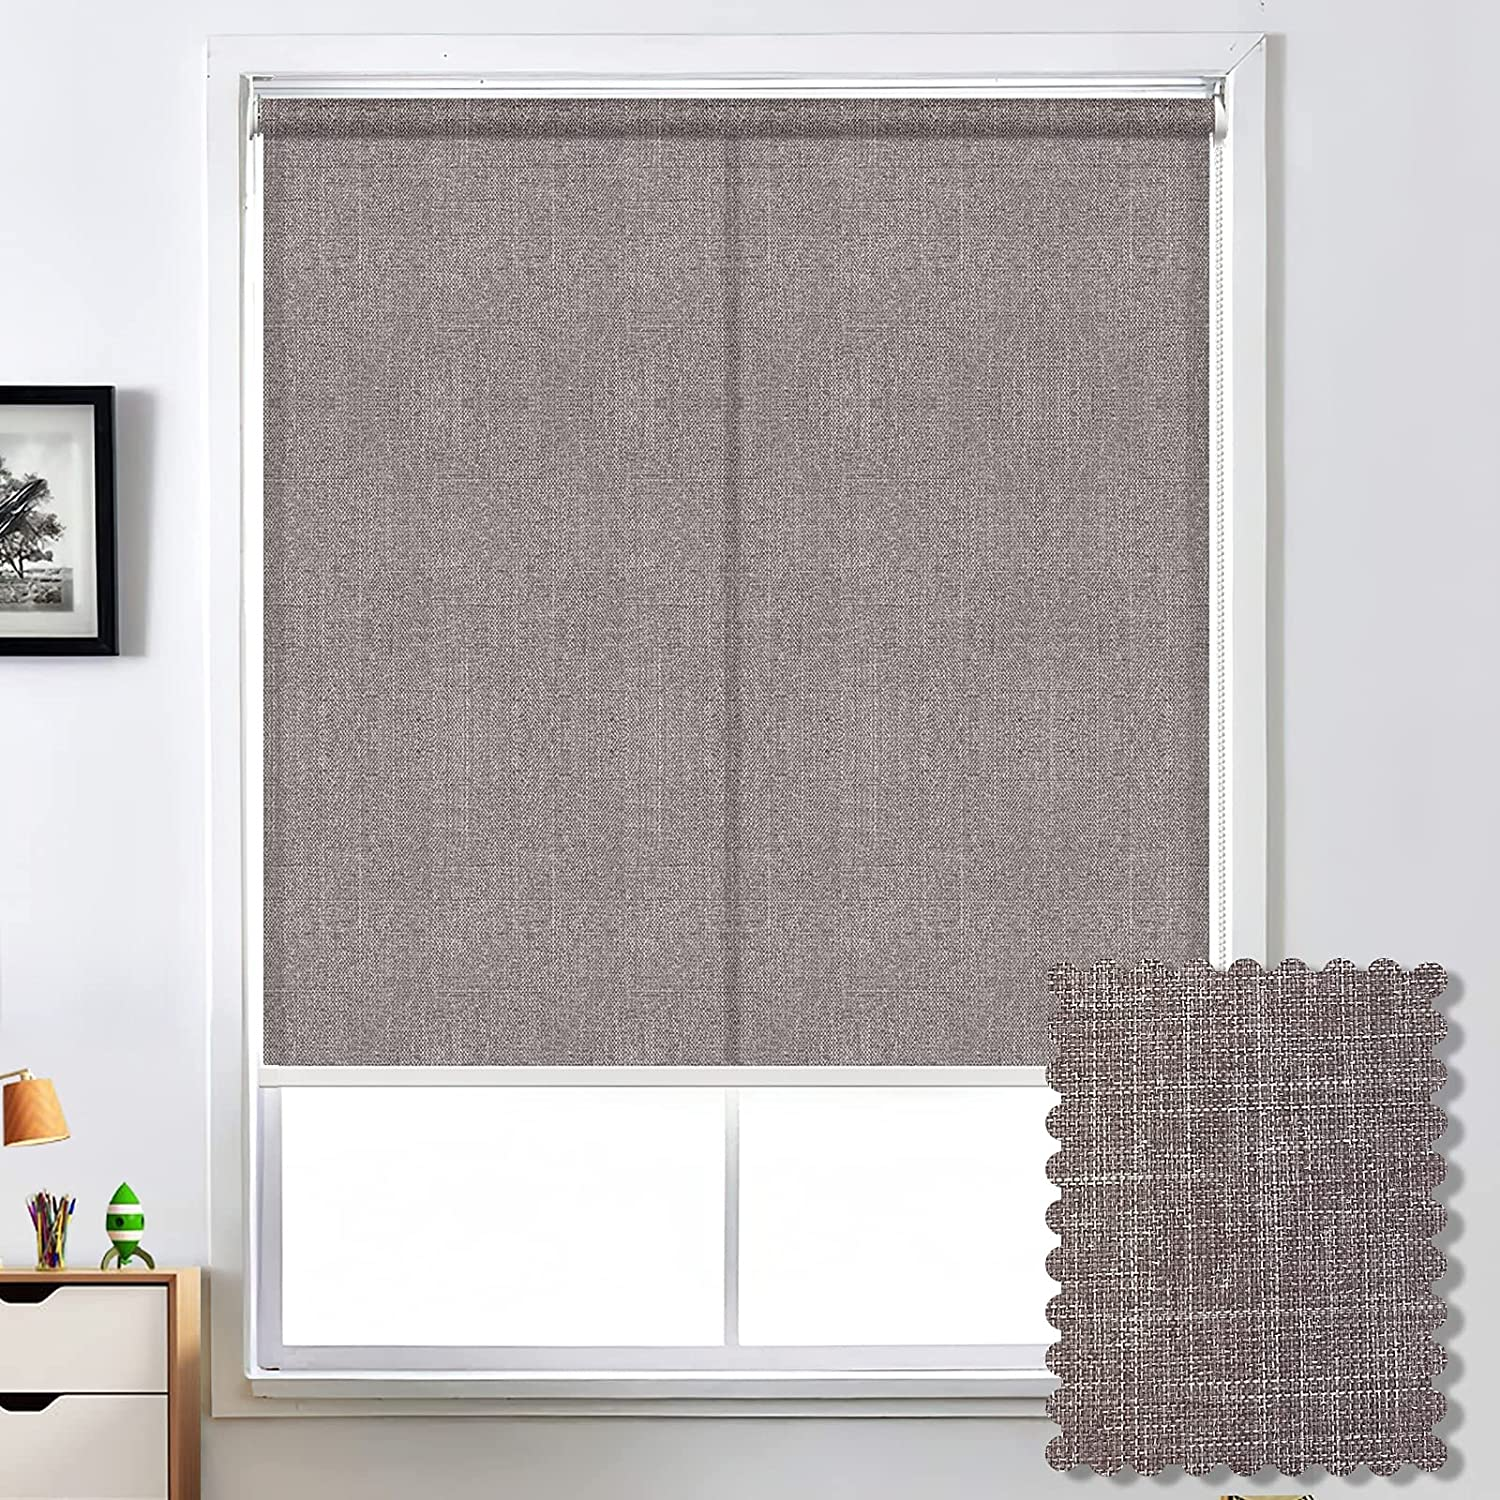 Light Filtering Window Shades Sun Screen Roller Shades Blinds, UV Protection Durable Window Sheer Shades Half Shading for Home Office Windows and Doors, Easy to Install, Customized Size